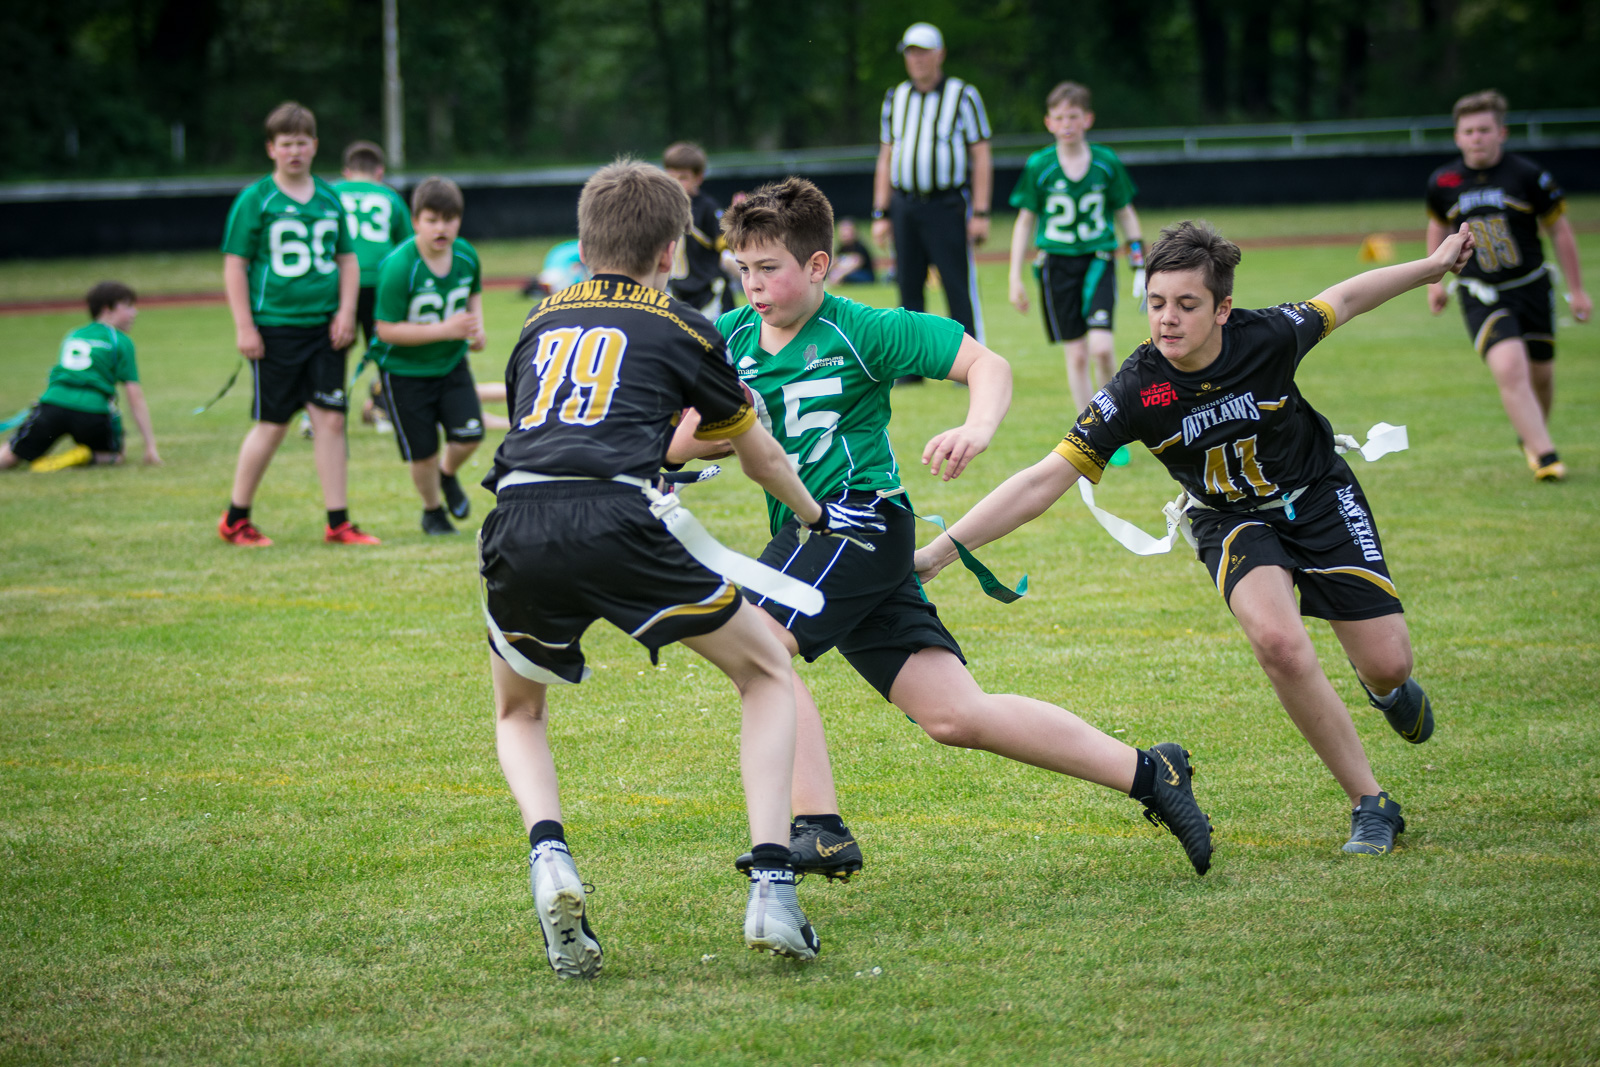 https://www.oldenburgknights.de/wp-content/uploads/2019/11/knights-flags-outlaws-young-gunz-0322.jpg